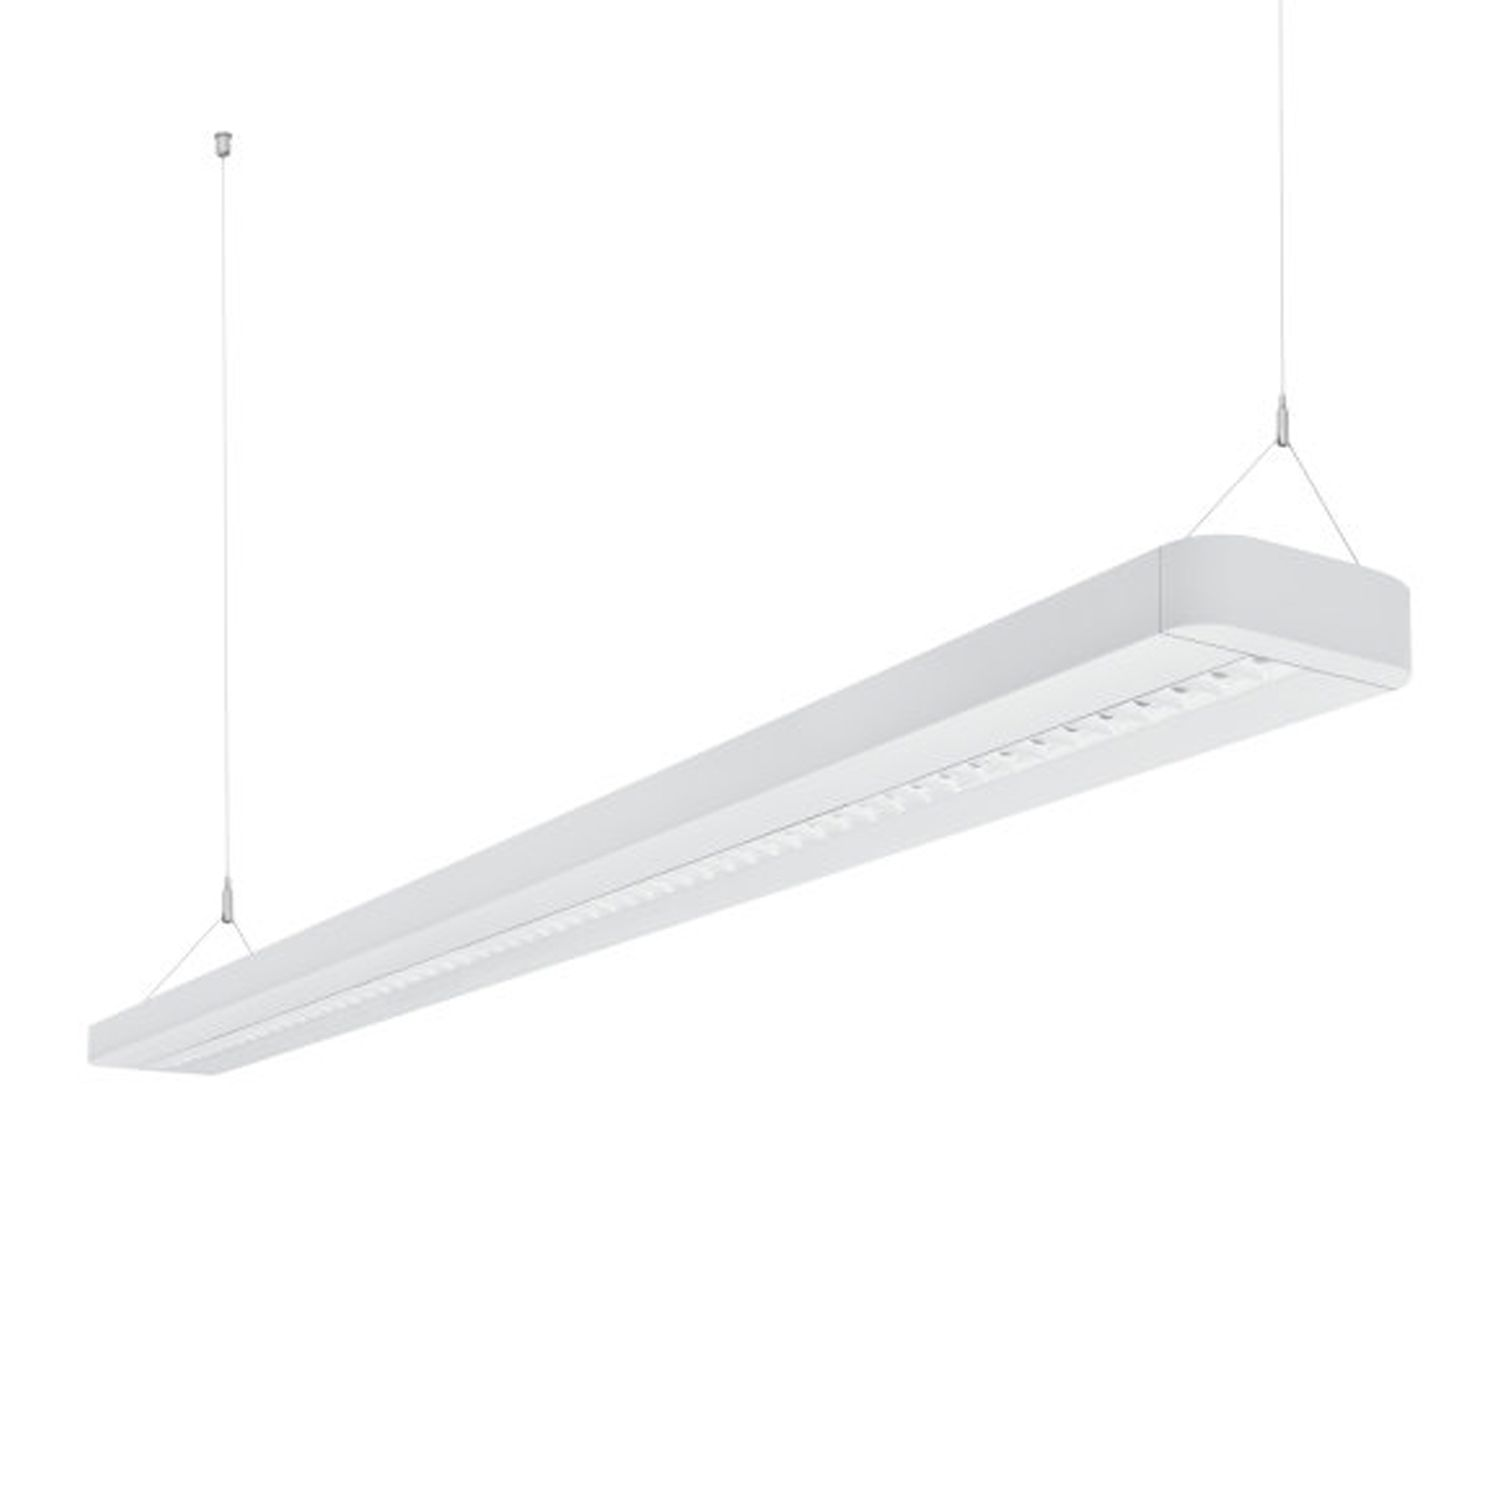 Ledvance LINEAR IndiviLED DIRECT 48W 150cm 4000K  | Cool White